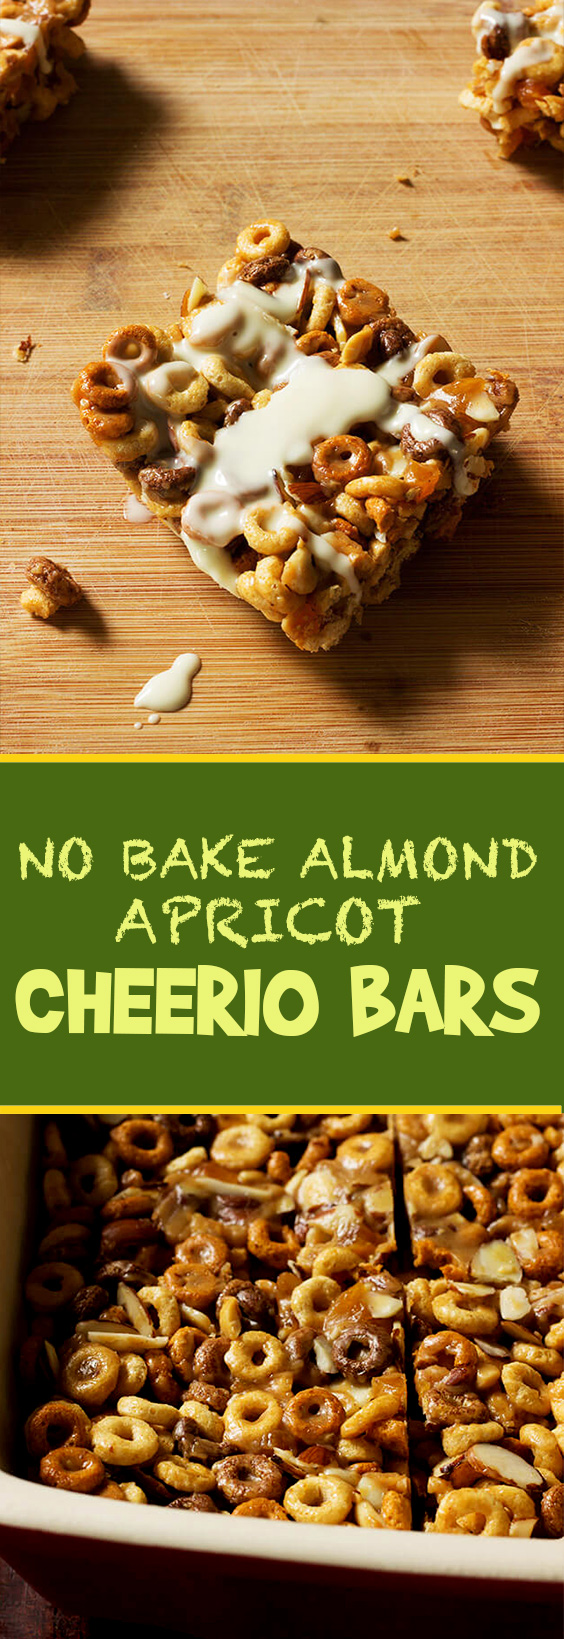 No Bake almond apricot Cheerio Bars has everything to fuel my day: Chocolate, peanut butter, almonds and multi-grain cheerios. Have in as a bar or in milk!